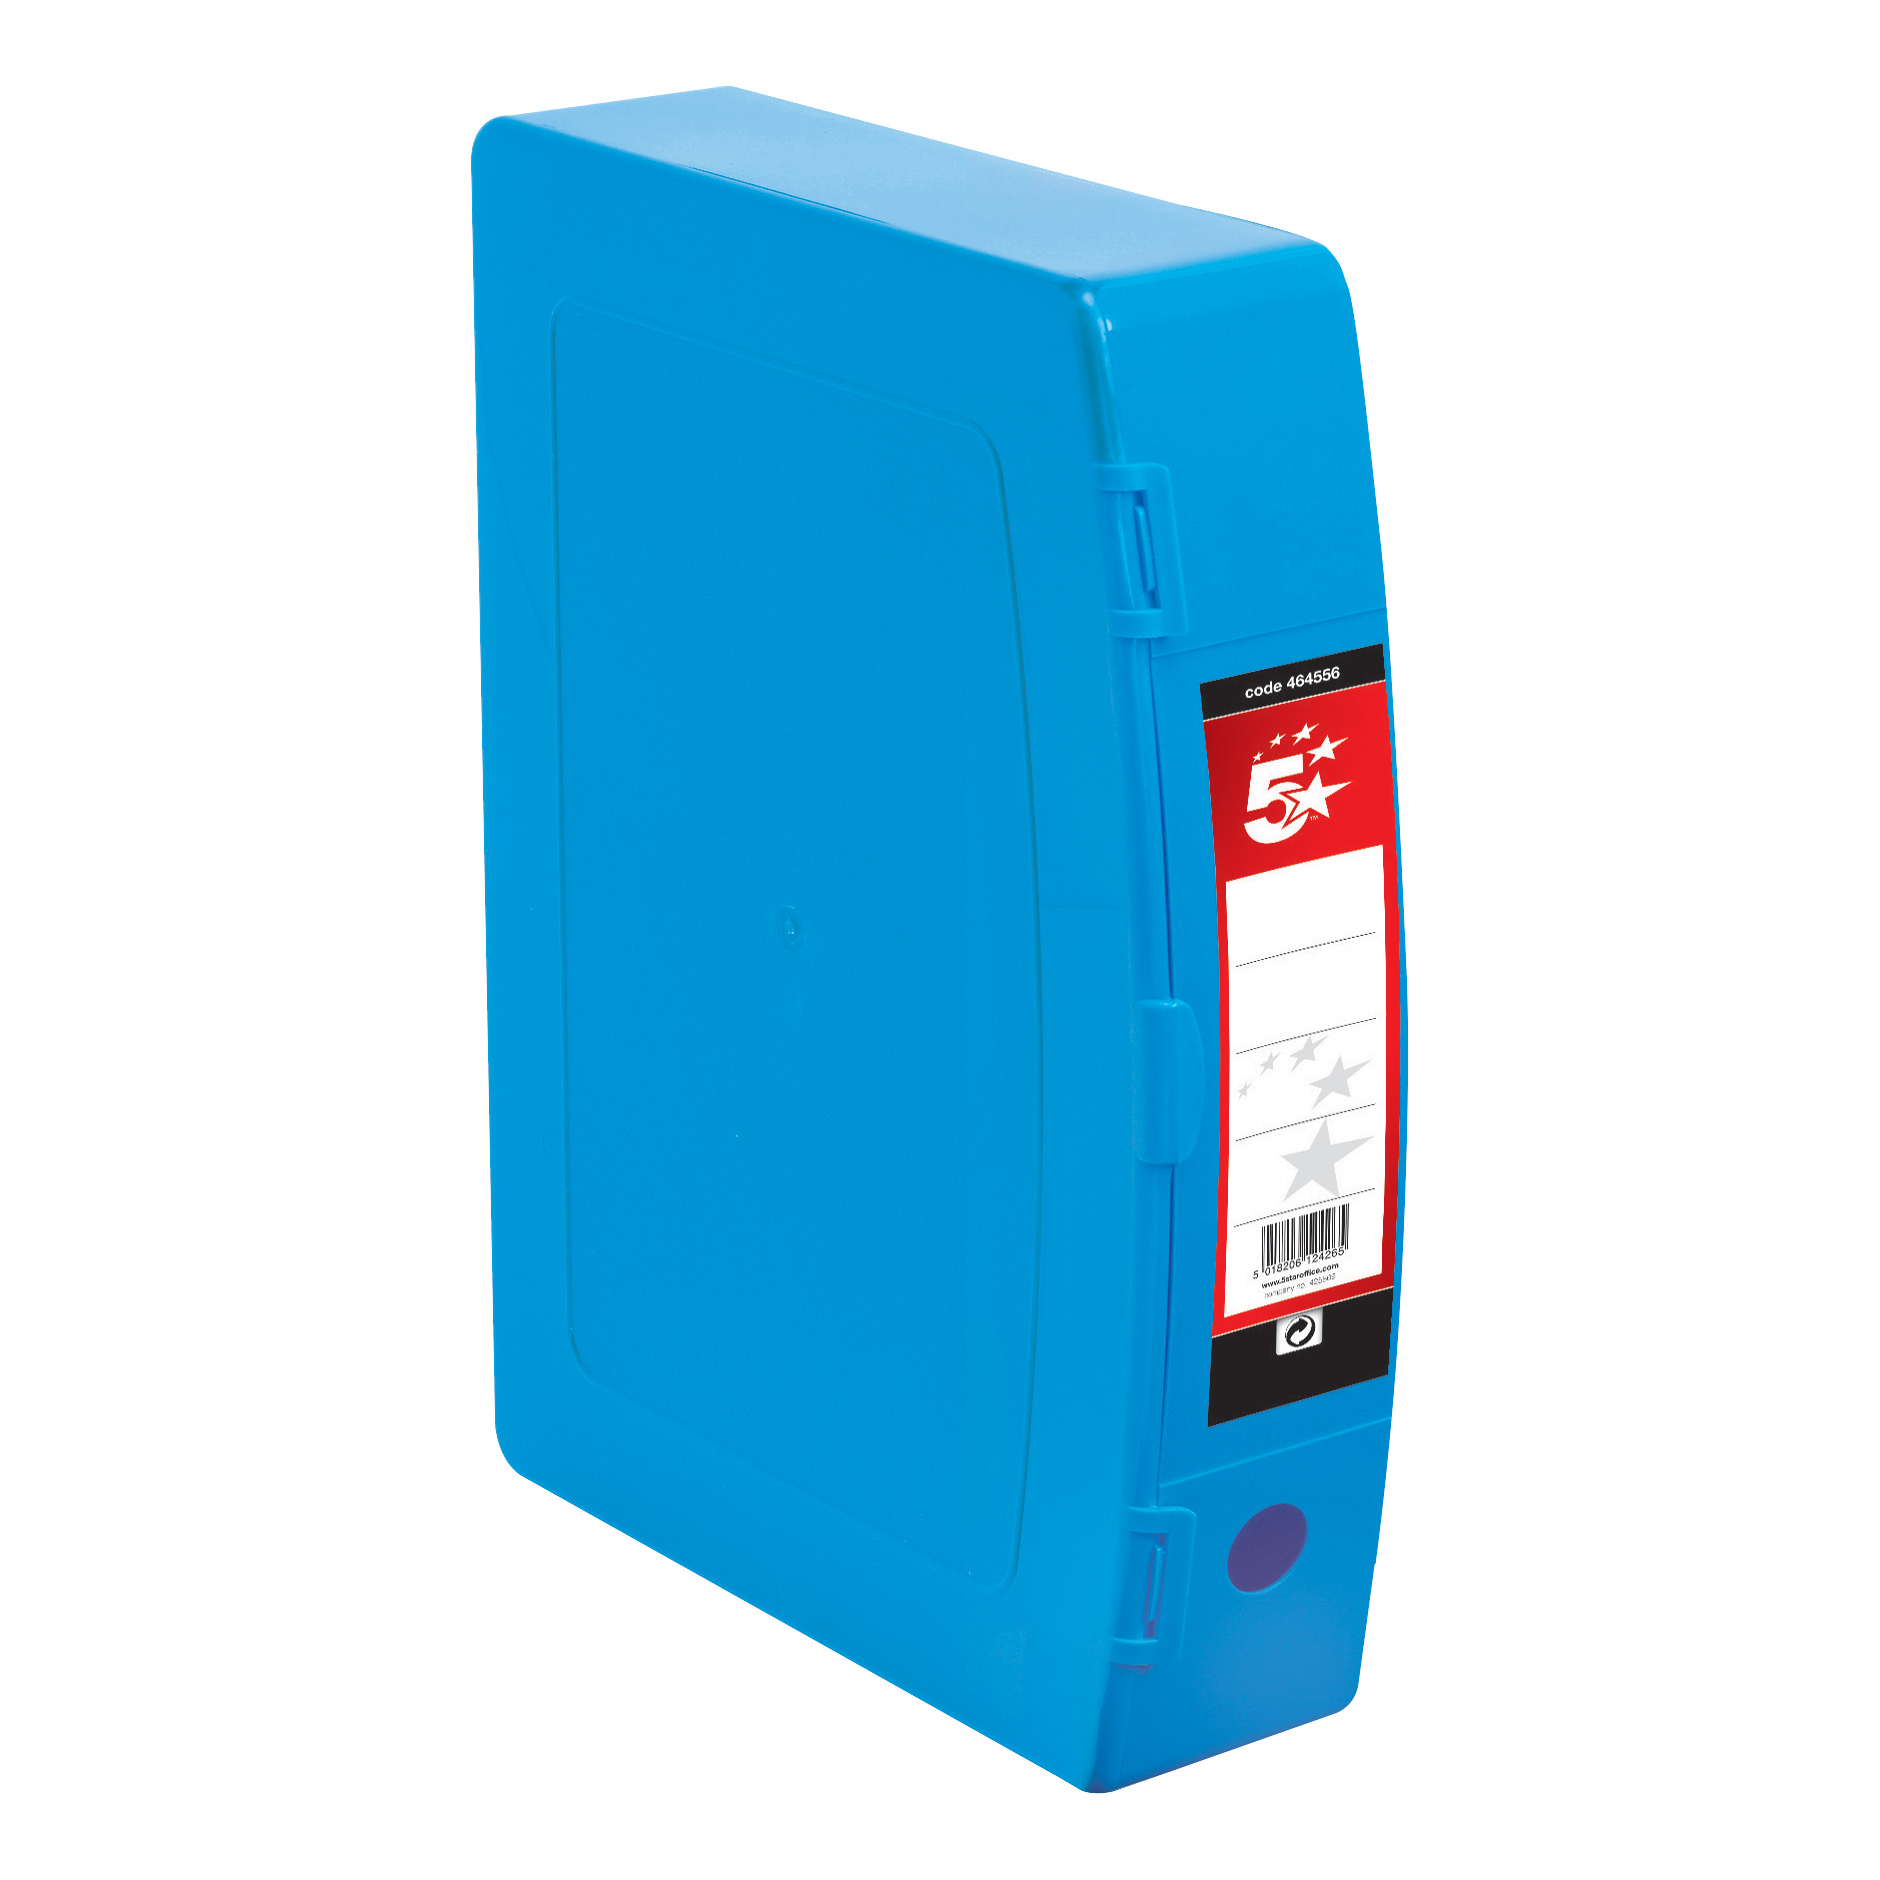 Box Files 5 Star Office Box File Capacity 70mm Polypropylene Twin Clip Lock Foolscap Blue